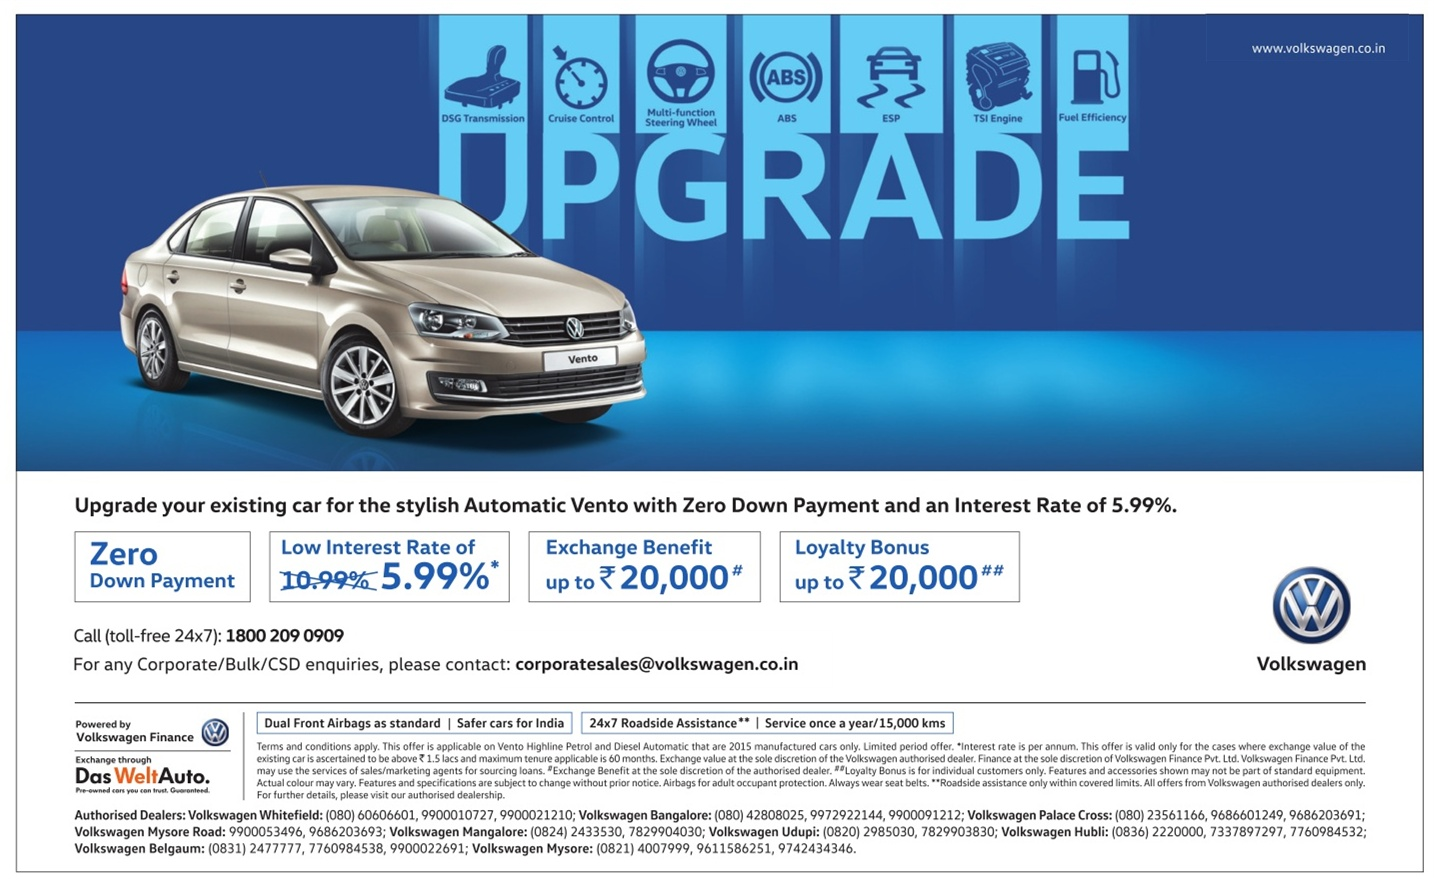 Best time to buy Volkswagen Vento | Amazing discount offers in may 2016